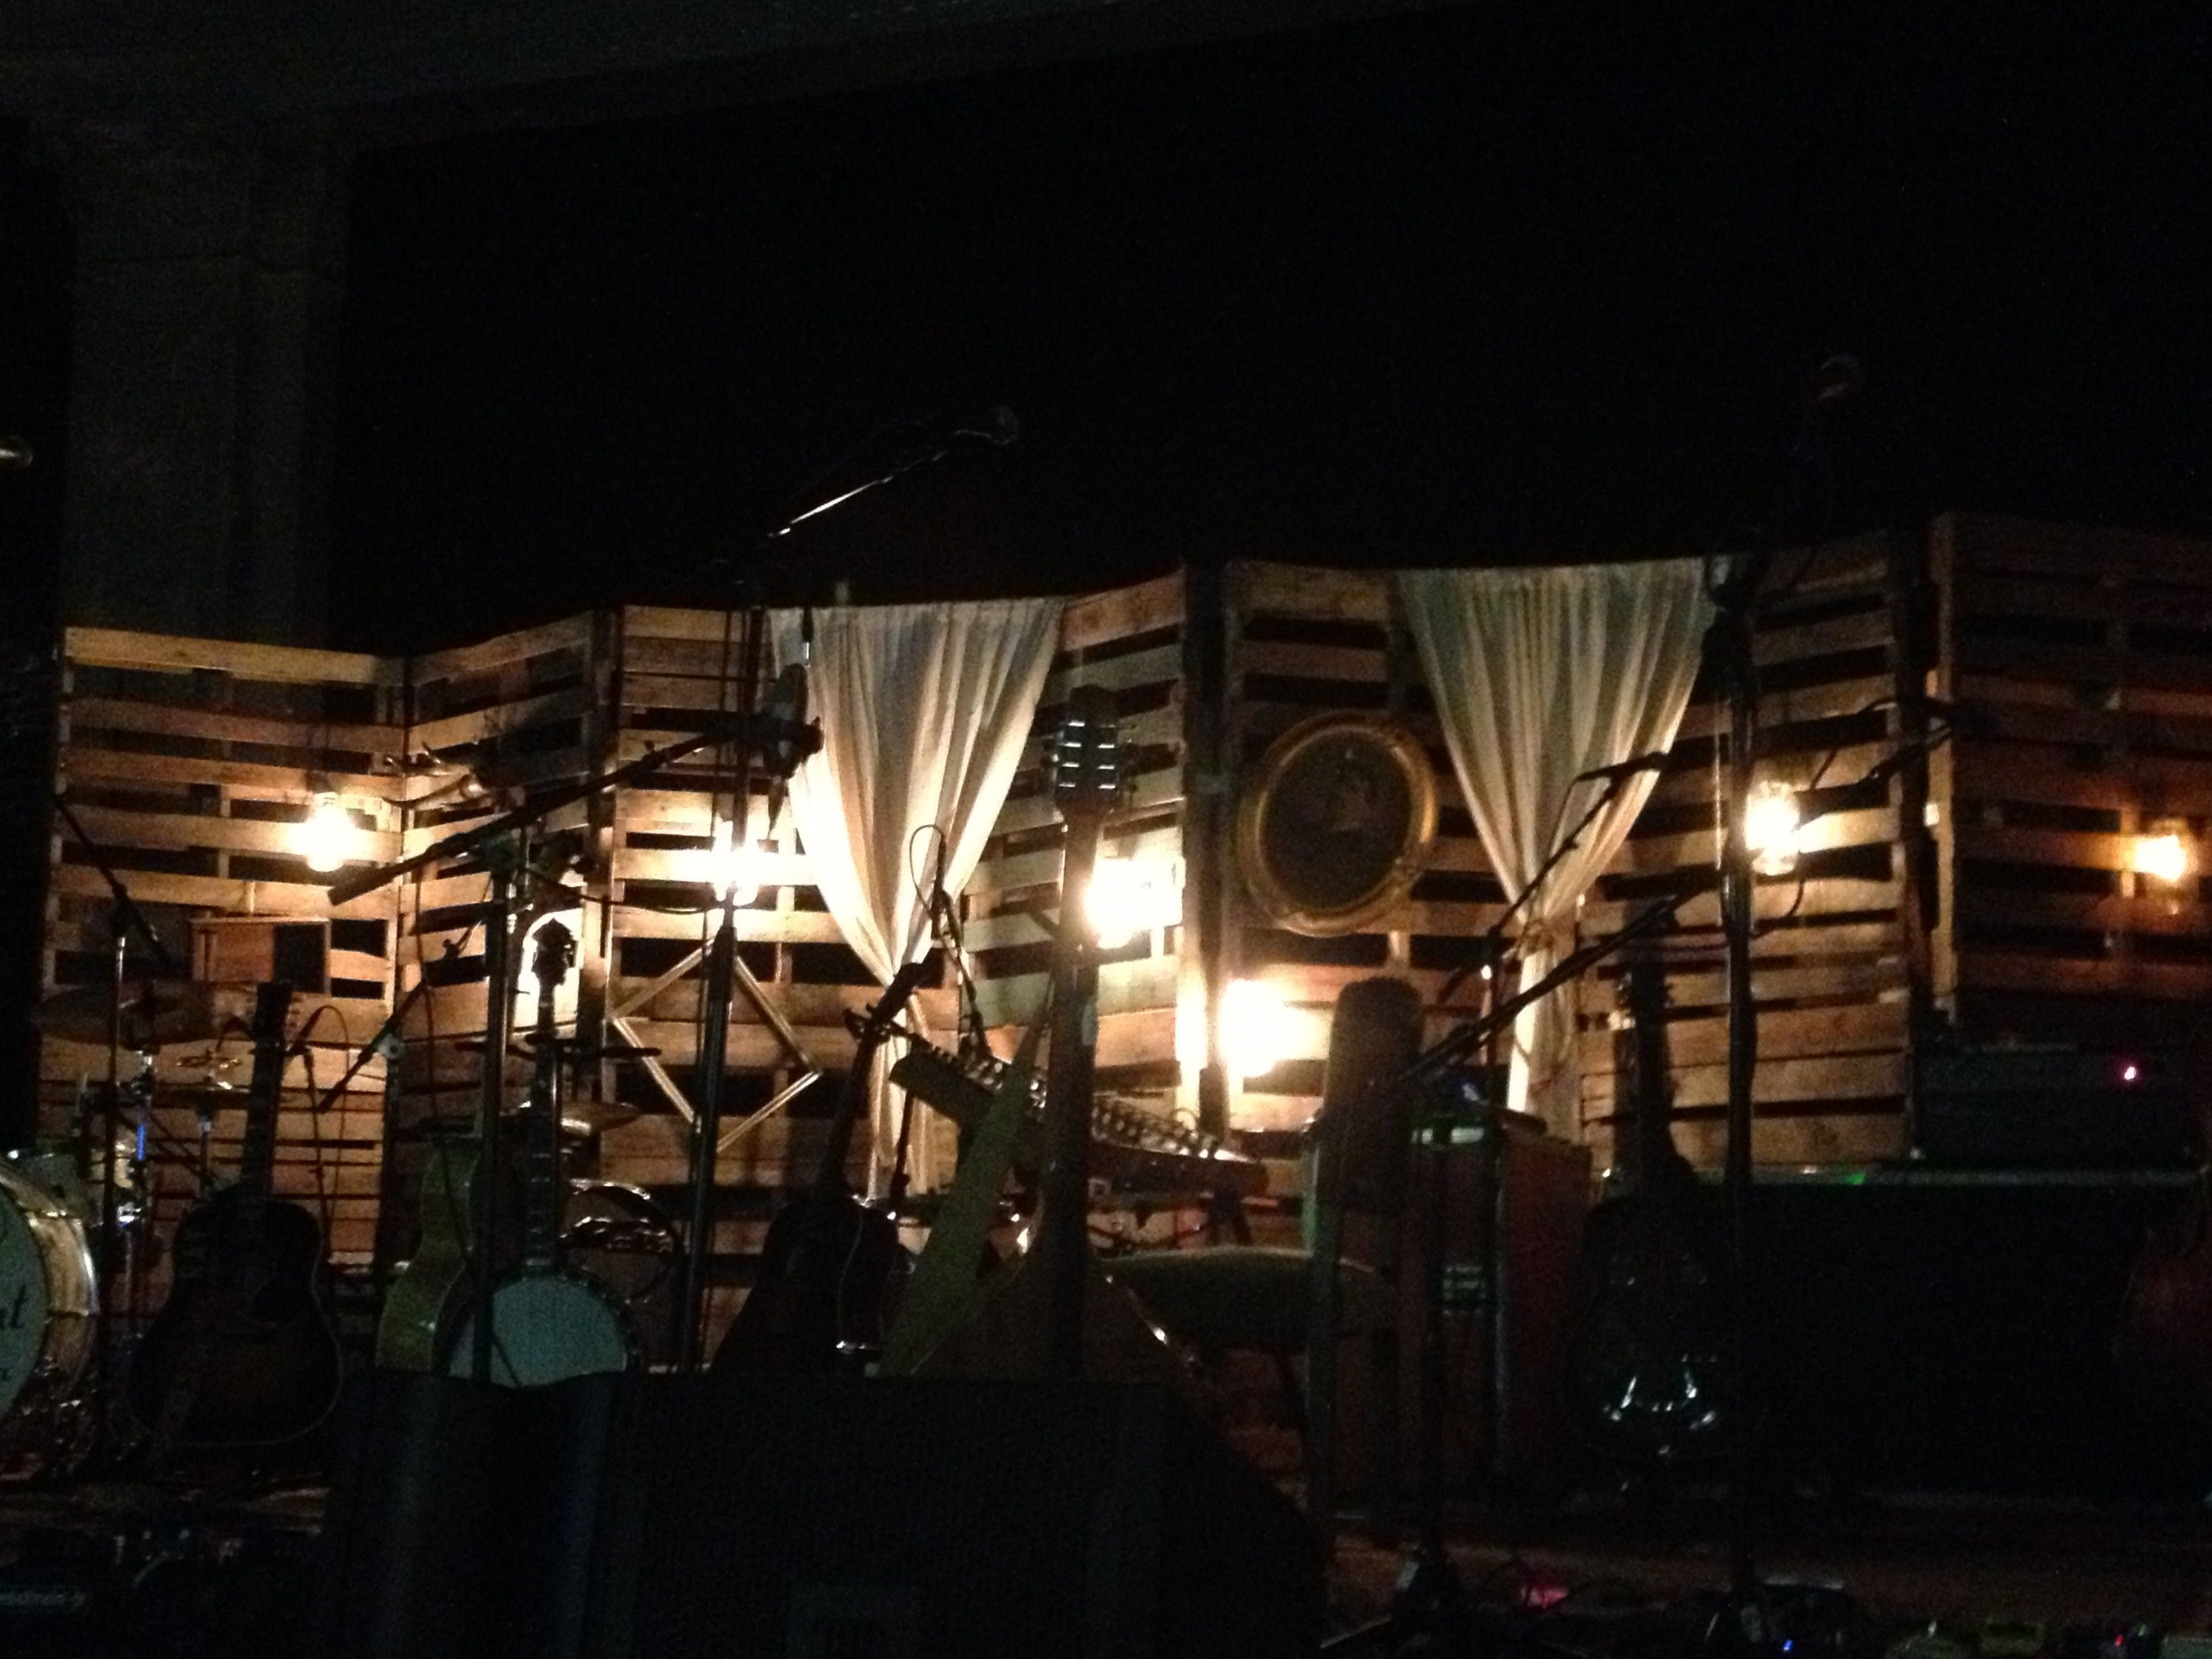 add some lighting curtains and decor it is perfect for an outdoor space wedding or as here backdrop a david crowder louisville decorative adds mystique n